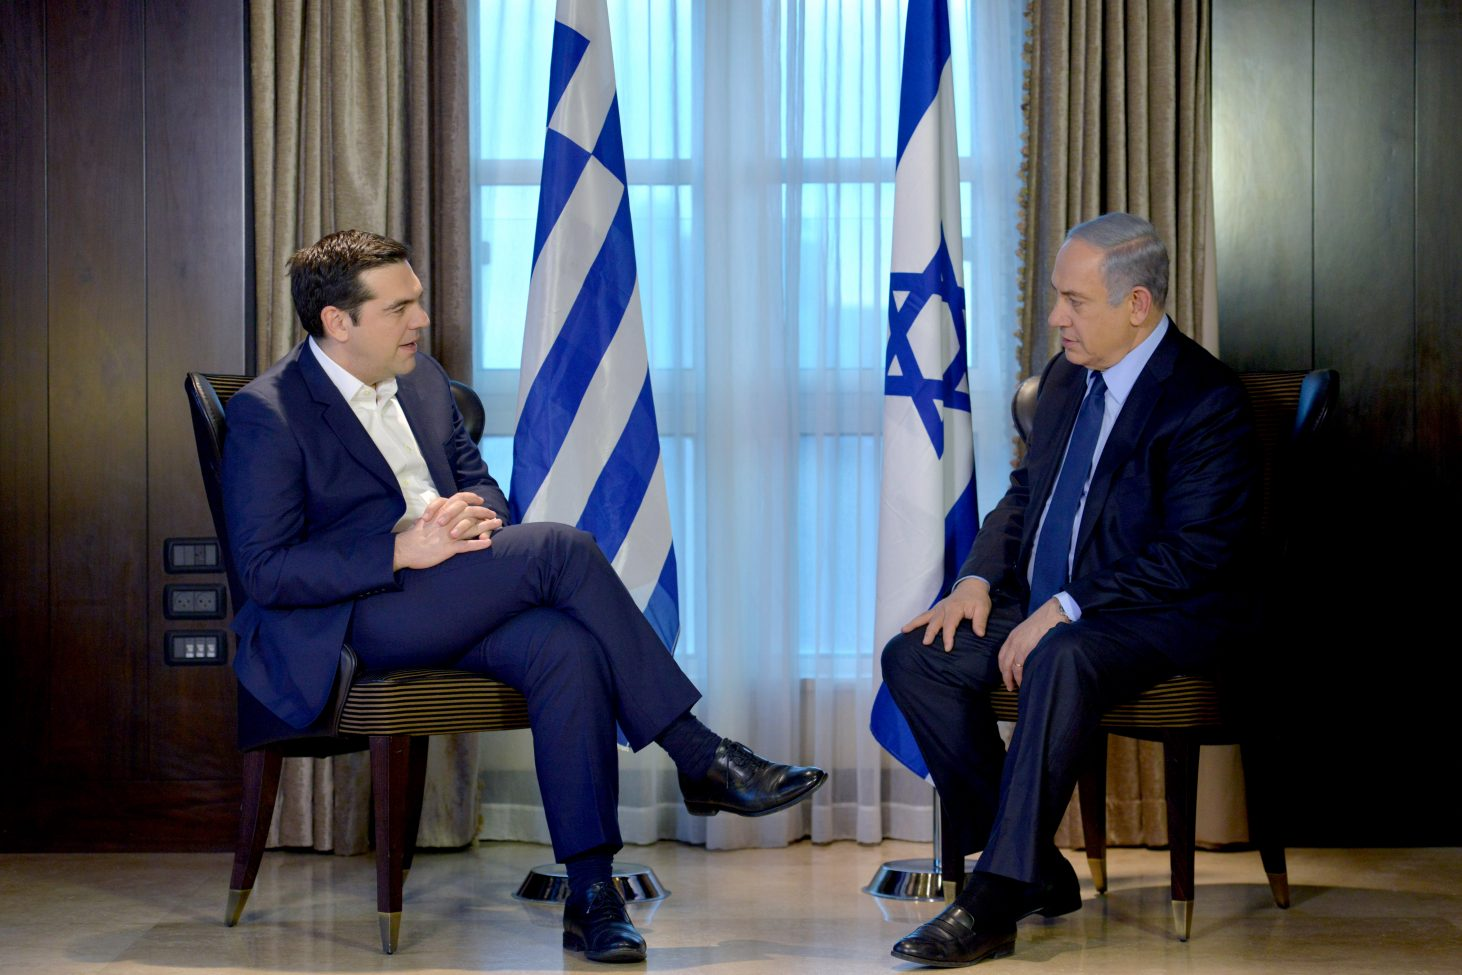 Prime Minister Benjamin Netanyahu and Prime Minister of Greece Alexis Tsipras speak at the King David Hotel in Jerusalem, during a government to government meeting.